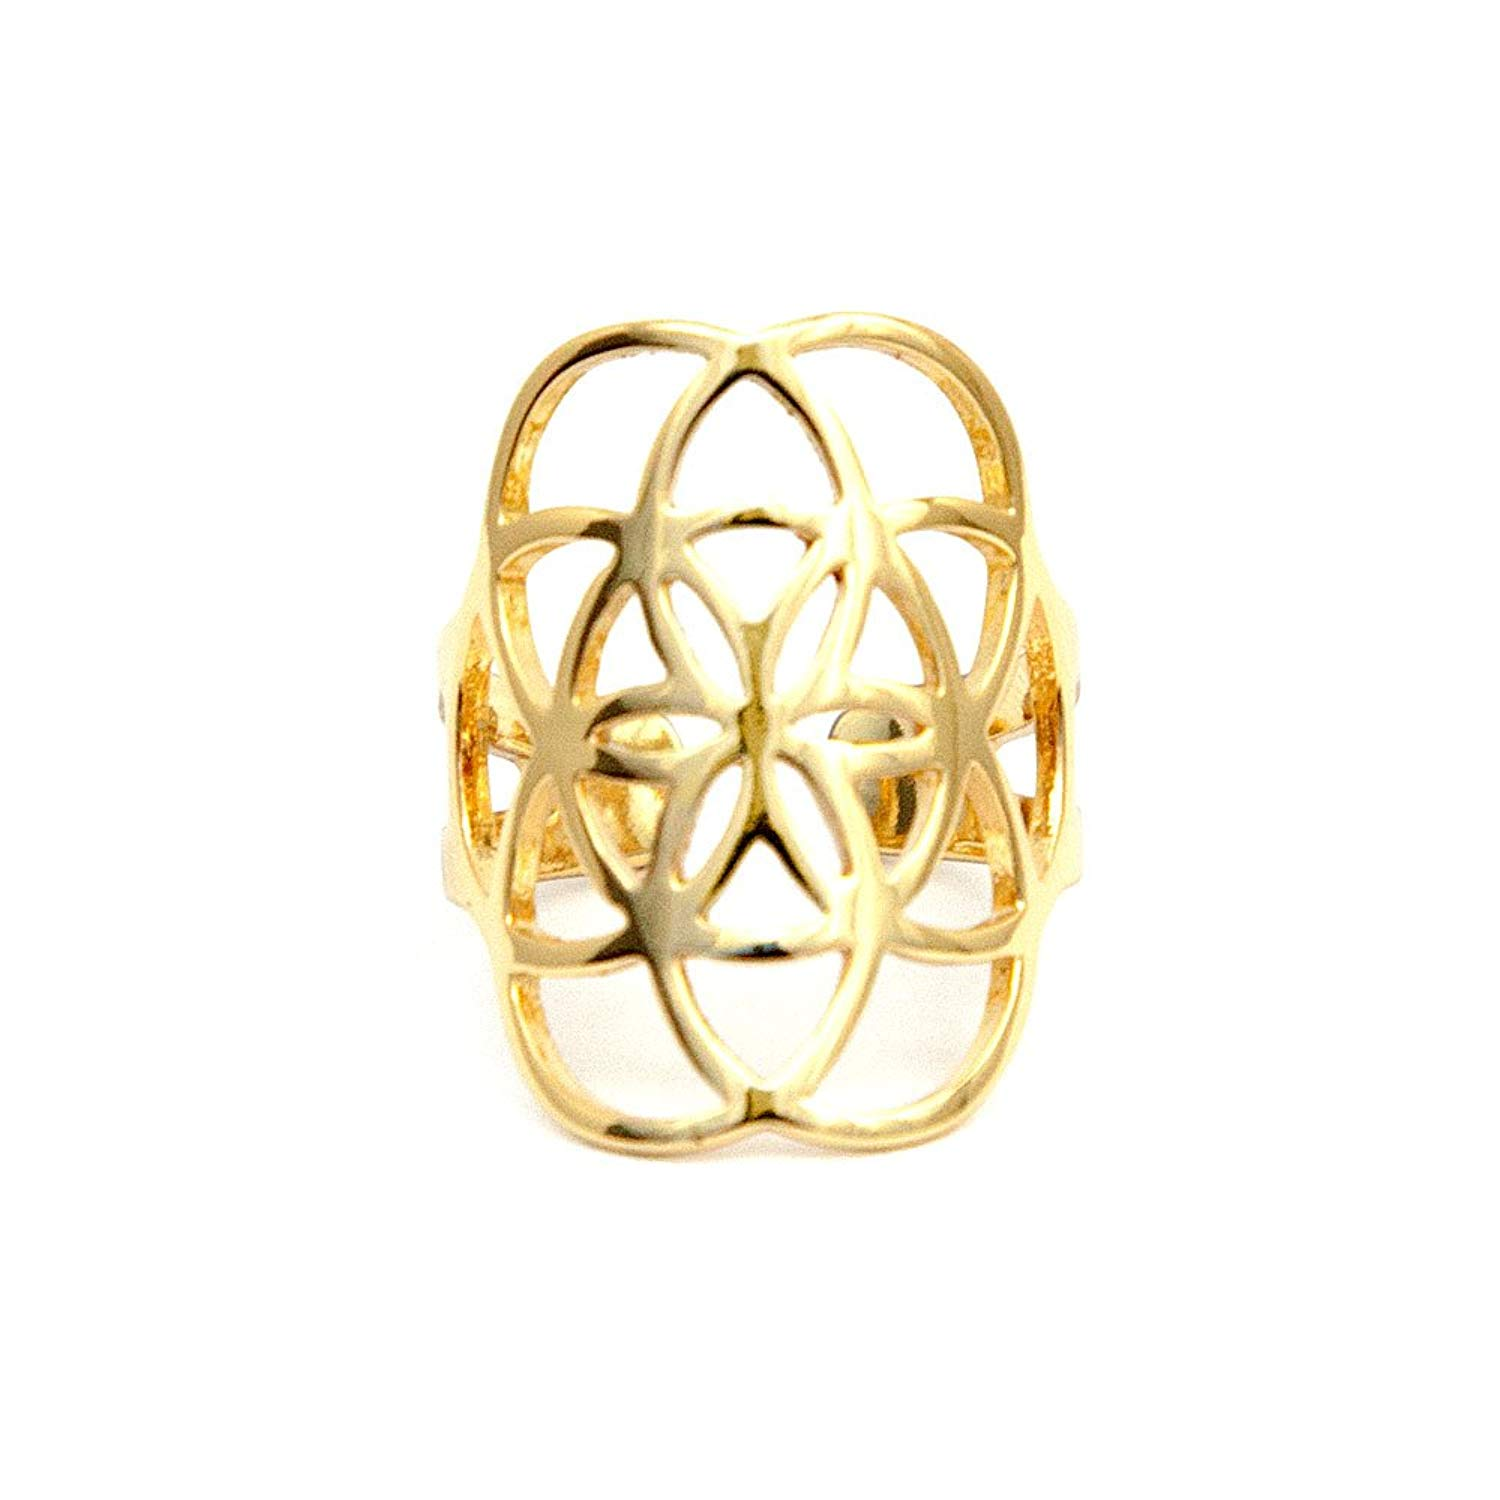 Tiny Devotions Seed of Life Sacred Geometry Ring for Women- Gold